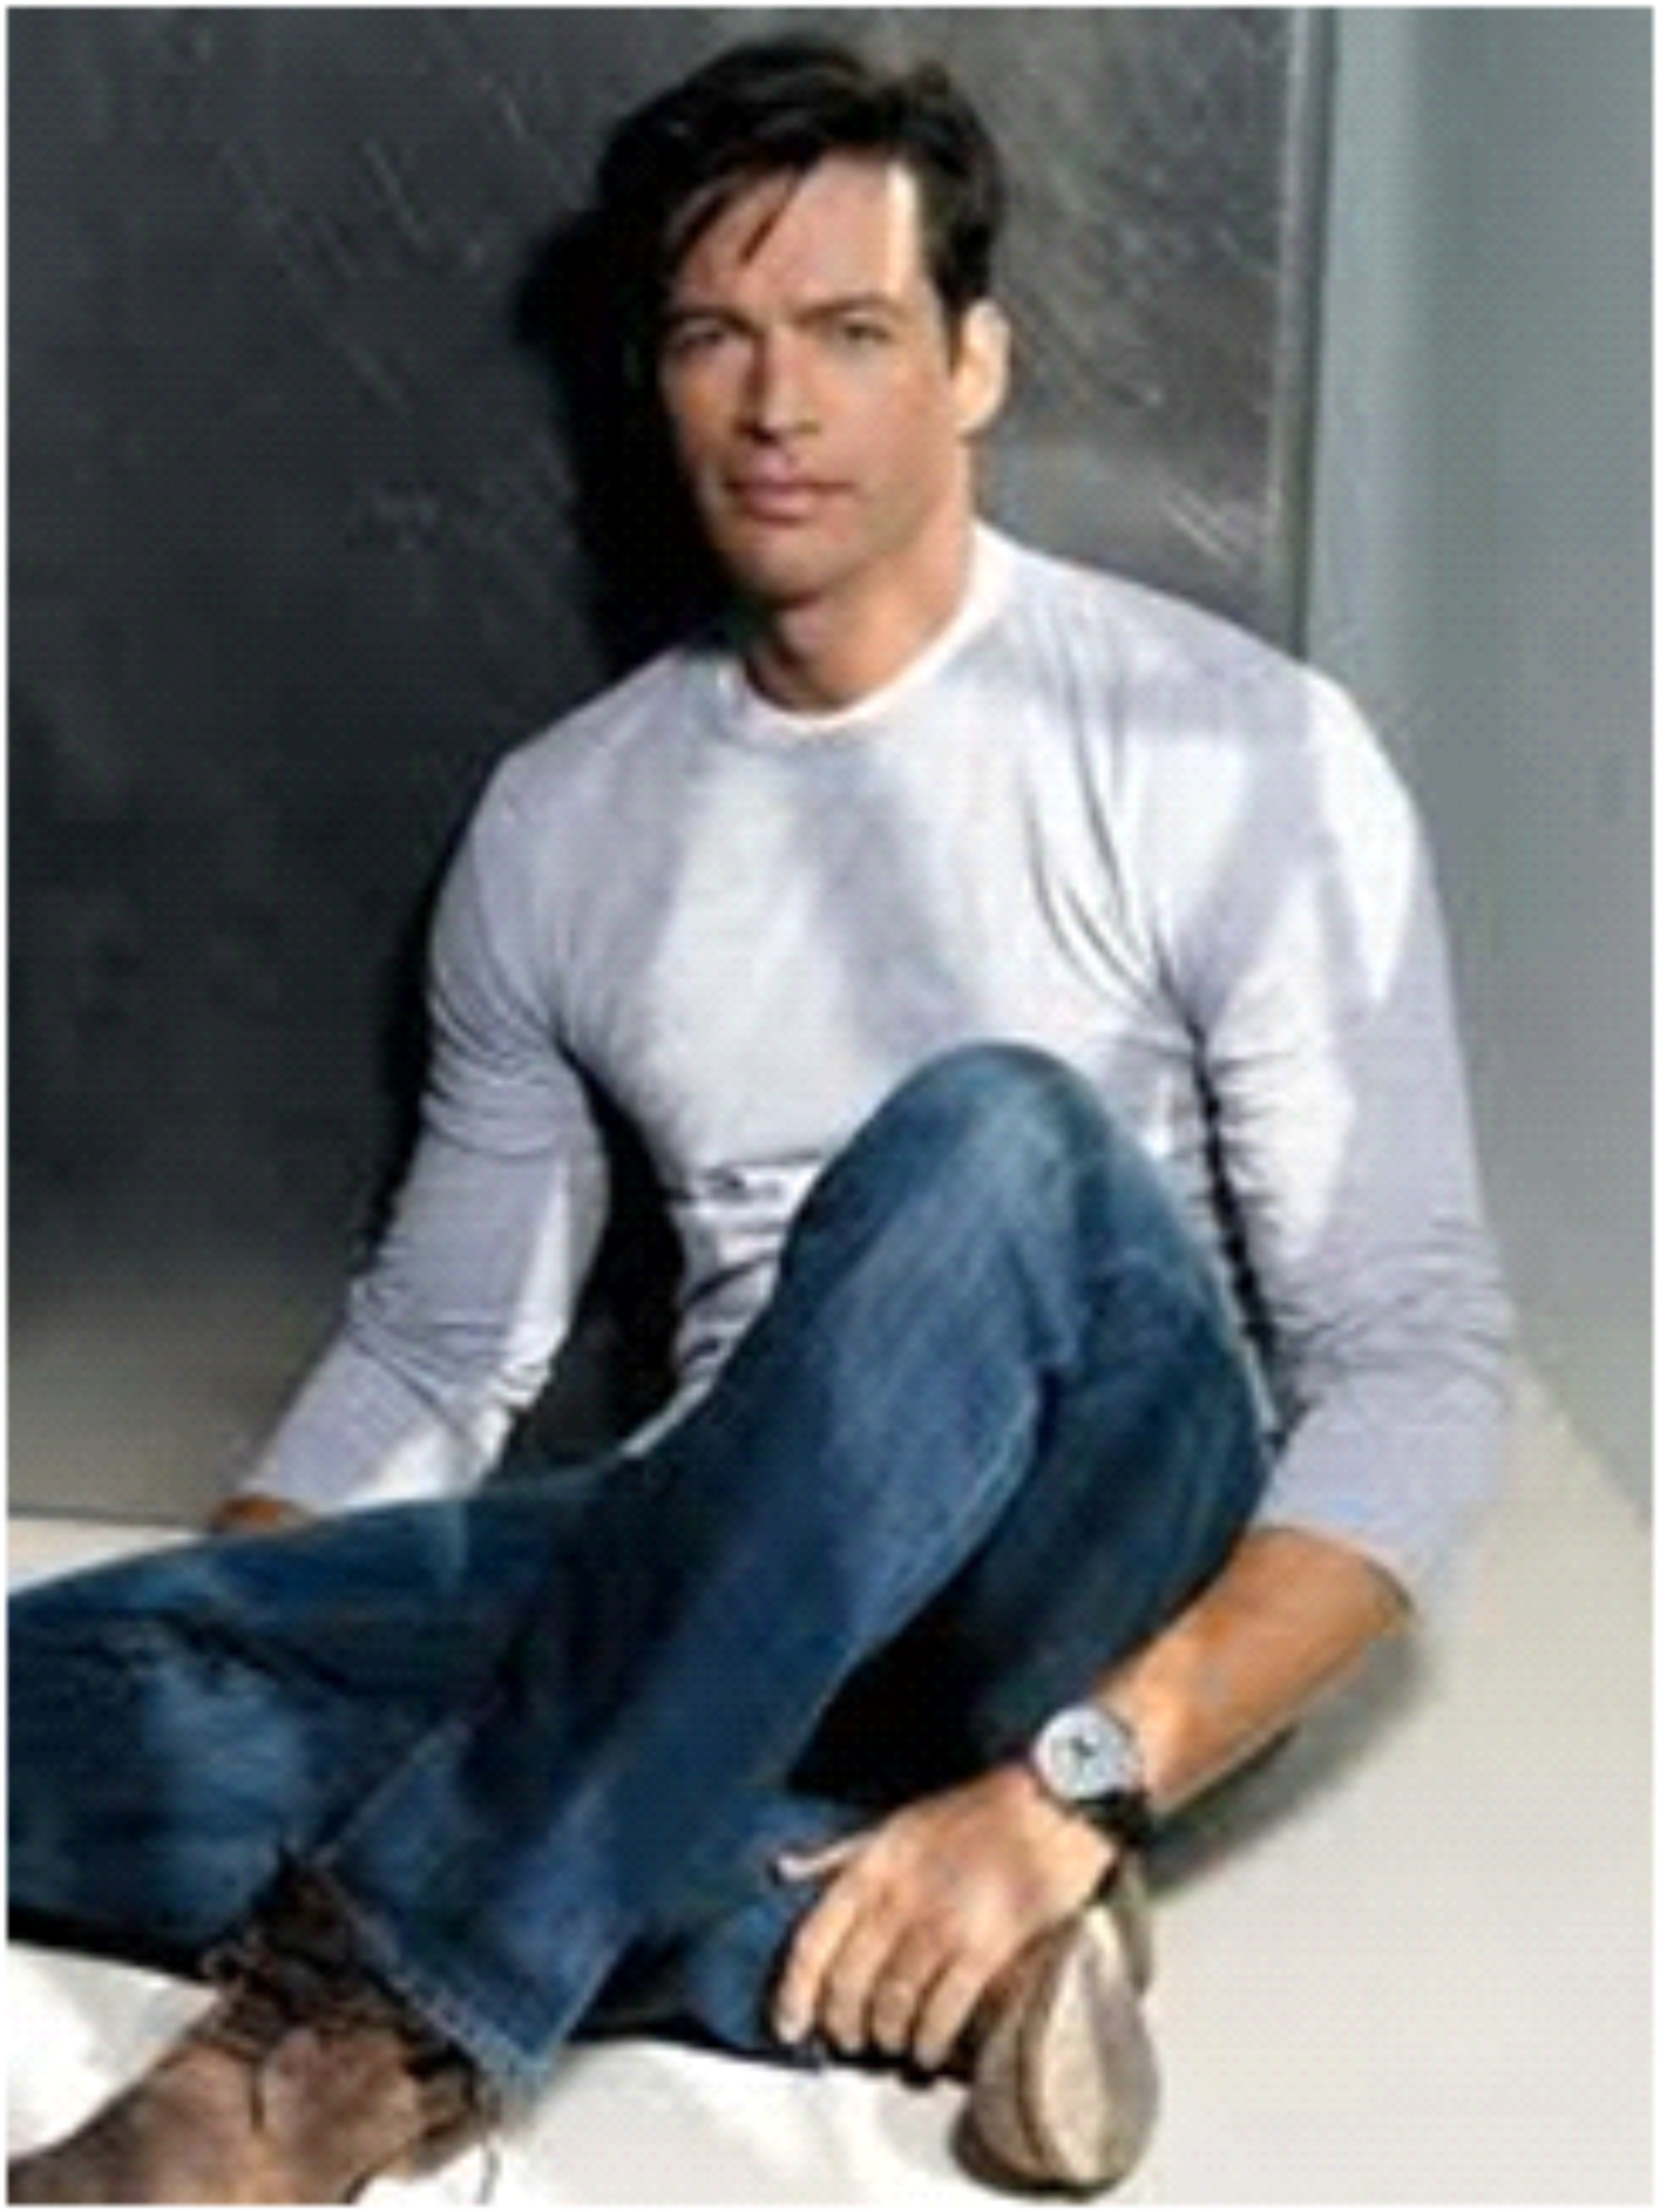 Like destiny harry connick jr swinging out live deepthroat was great